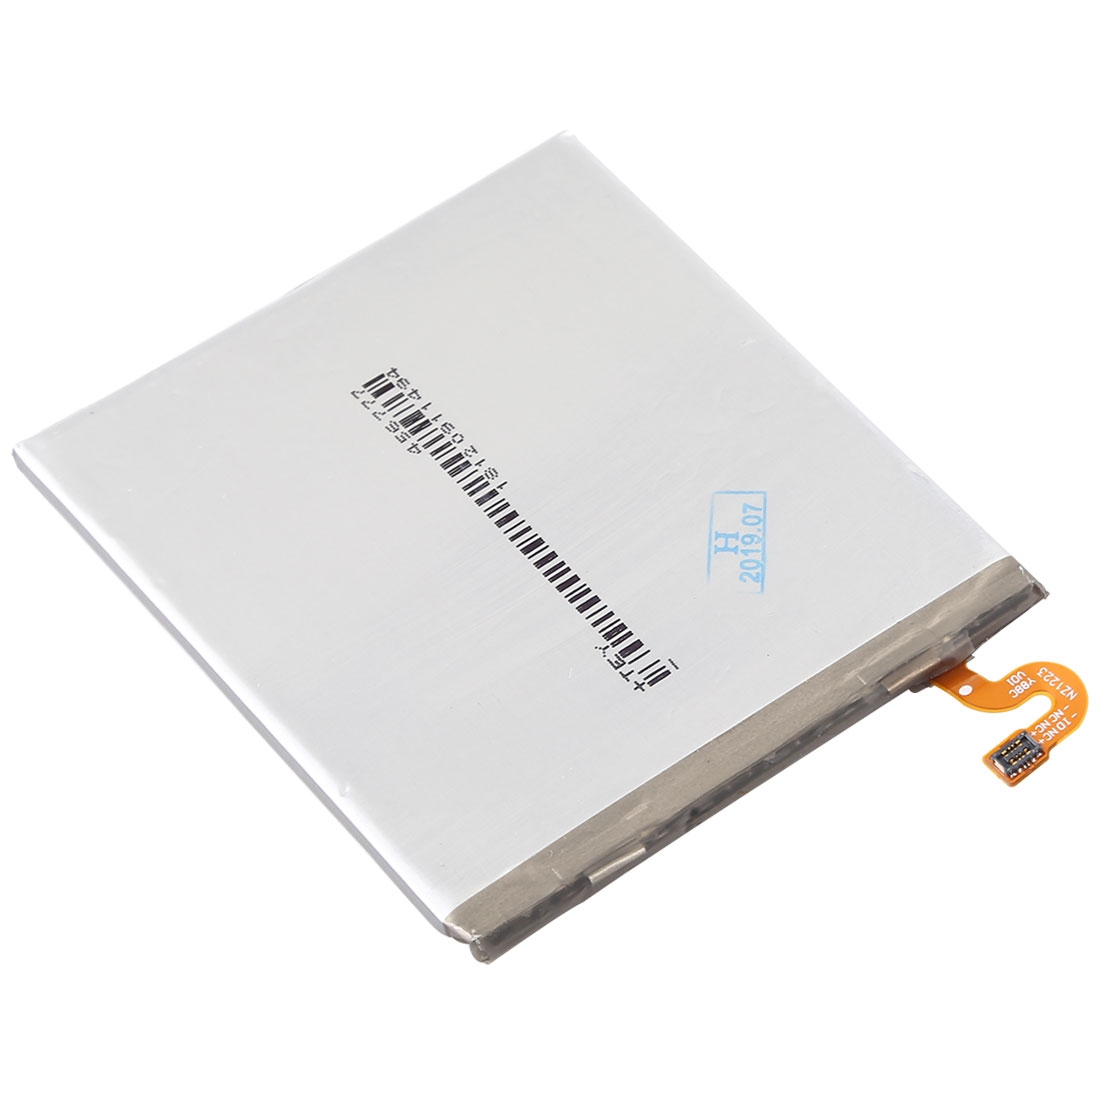 3720mAh Mobile Phone Replacement Battery for Galaxy A920